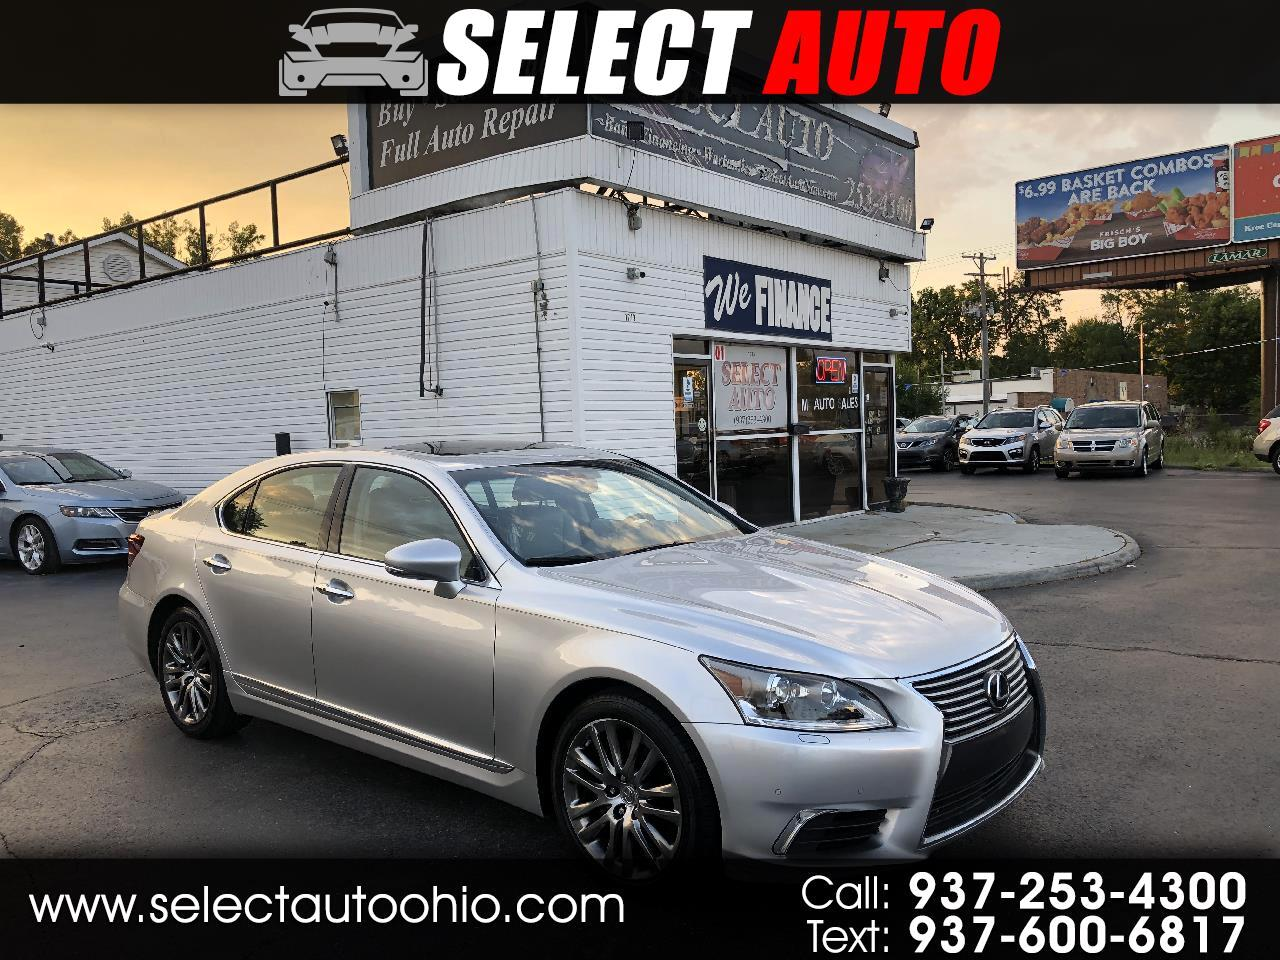 Lexus LS 460 Luxury Sedan 2016